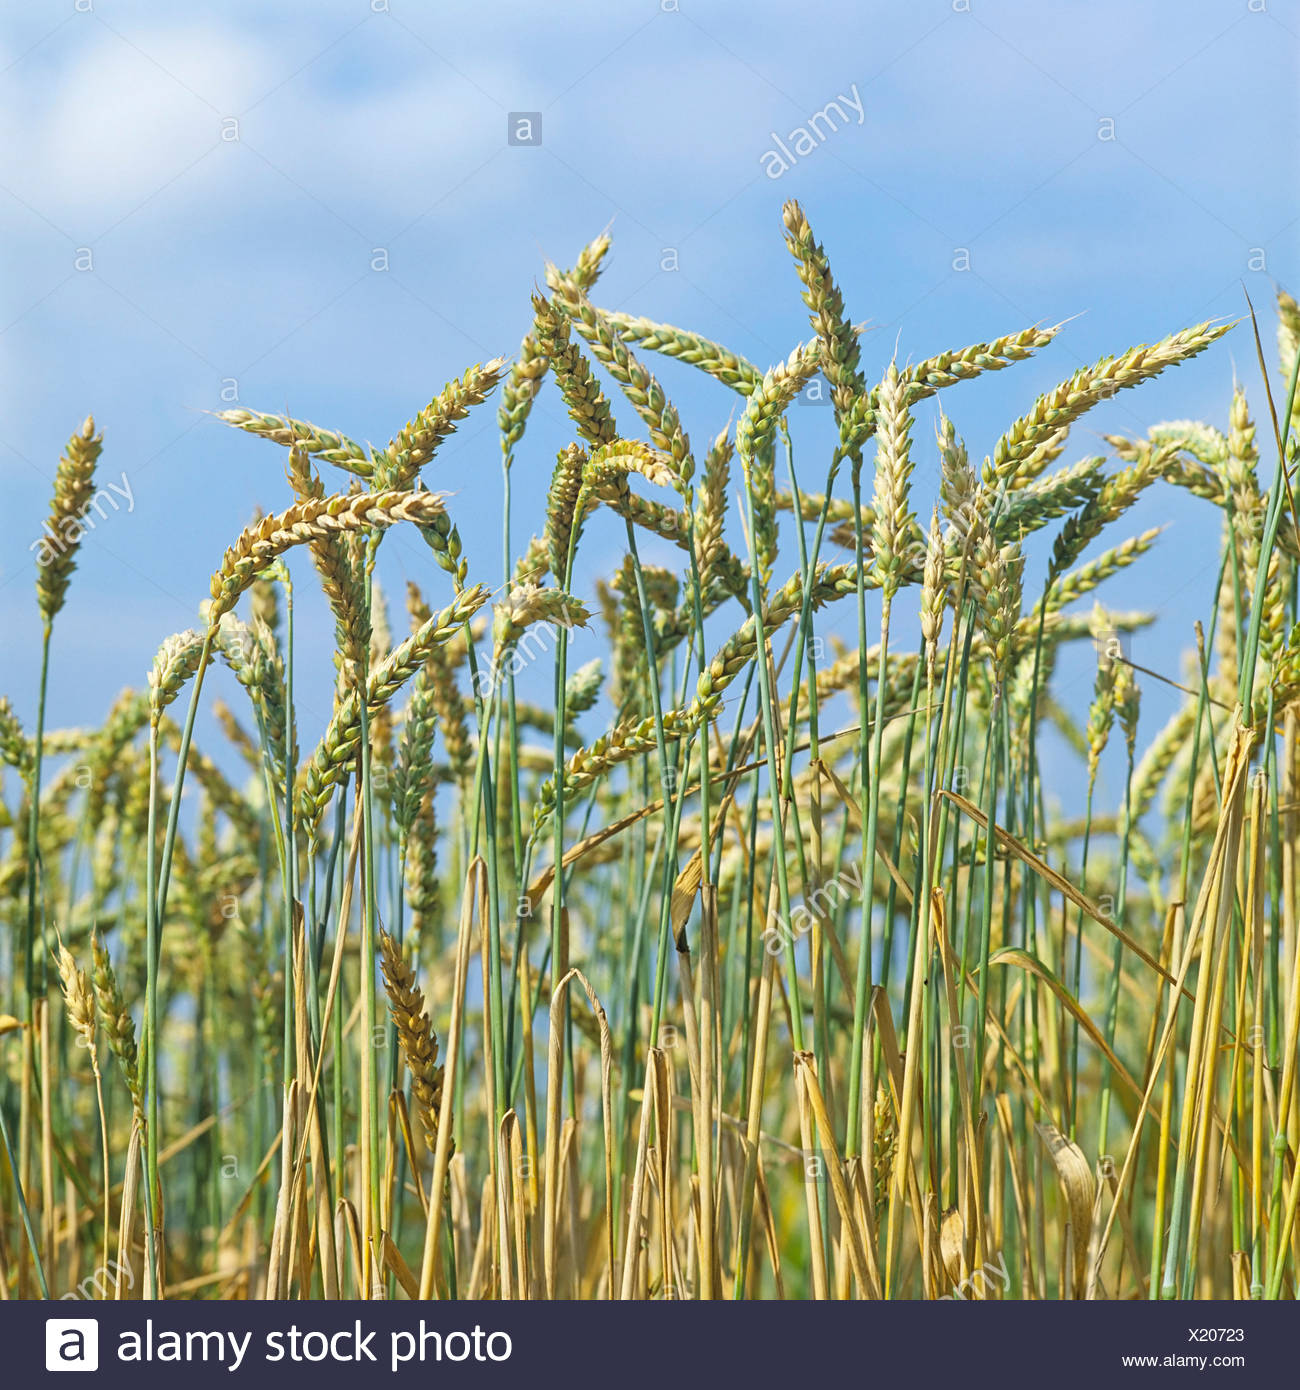 Wheat (Triticum), wheat field in Germany, Europe - Stock Image